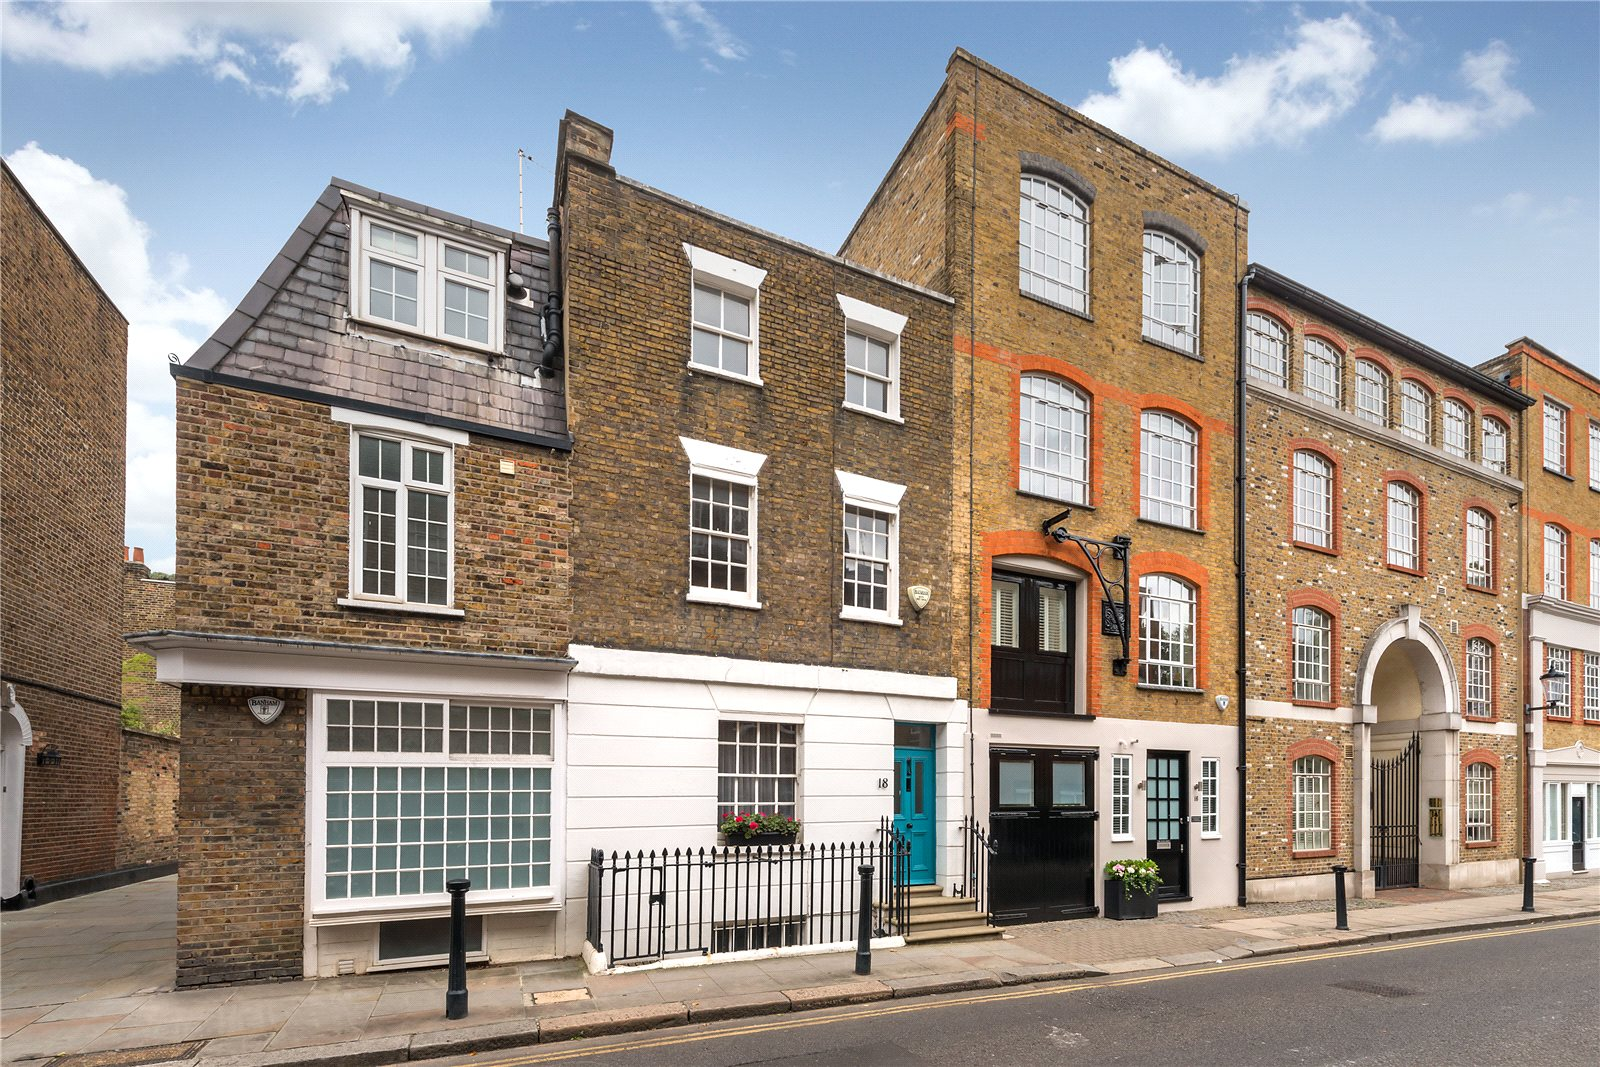 Single Family Home for Sale at Old Church Street, Chelsea, London, SW3 Chelsea, London, England